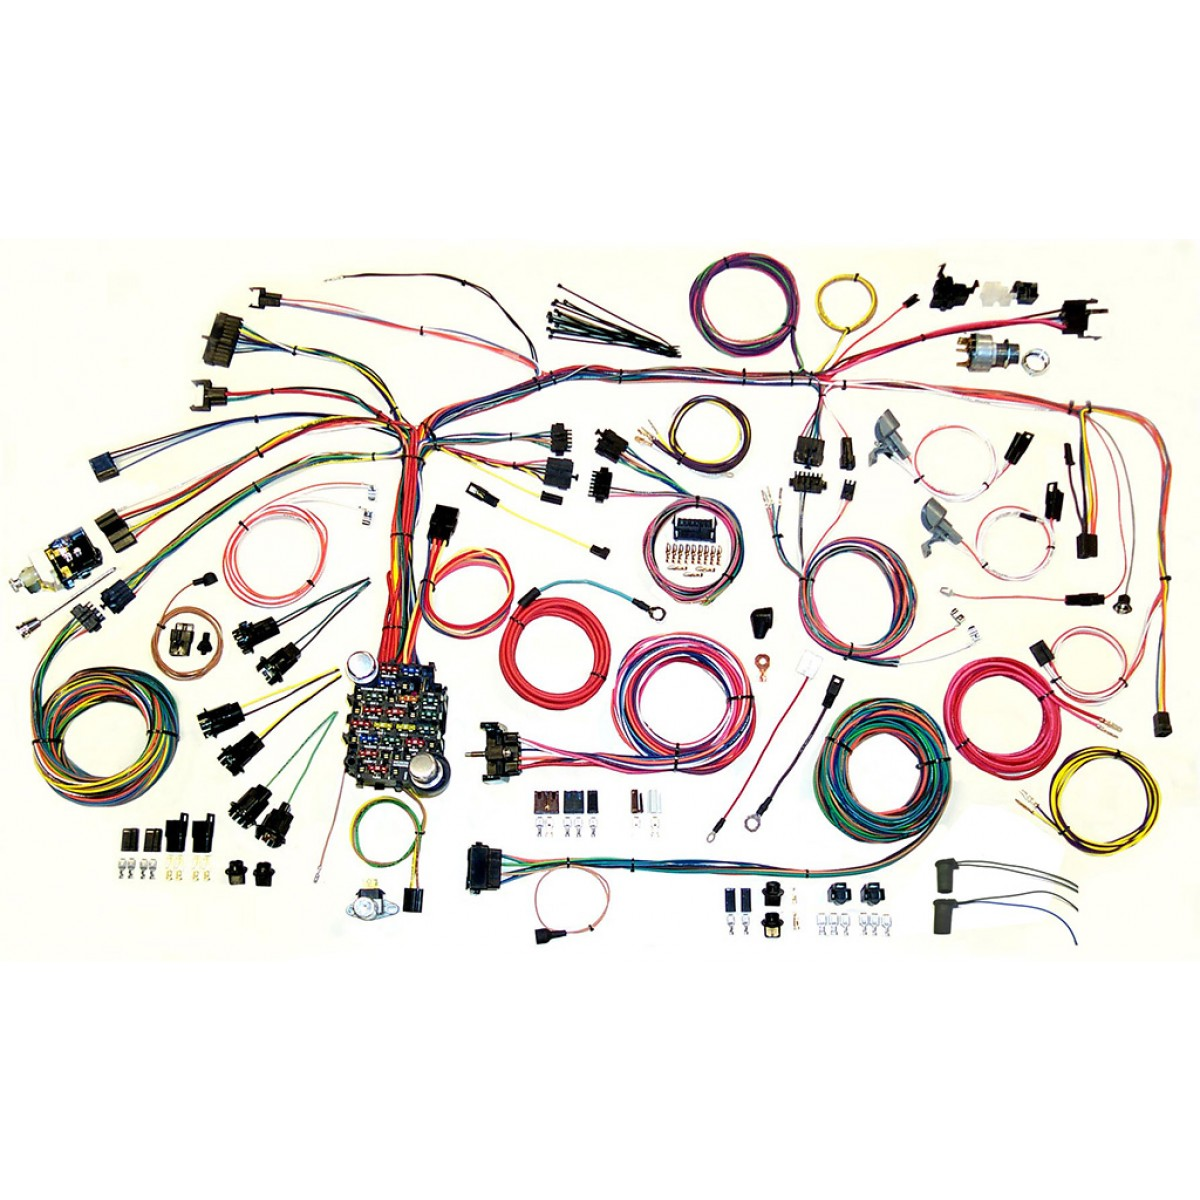 68 camaro wiring diagram 68 image wiring diagram complete wiring harness 68 camaro complete auto wiring diagram on 68 camaro wiring diagram